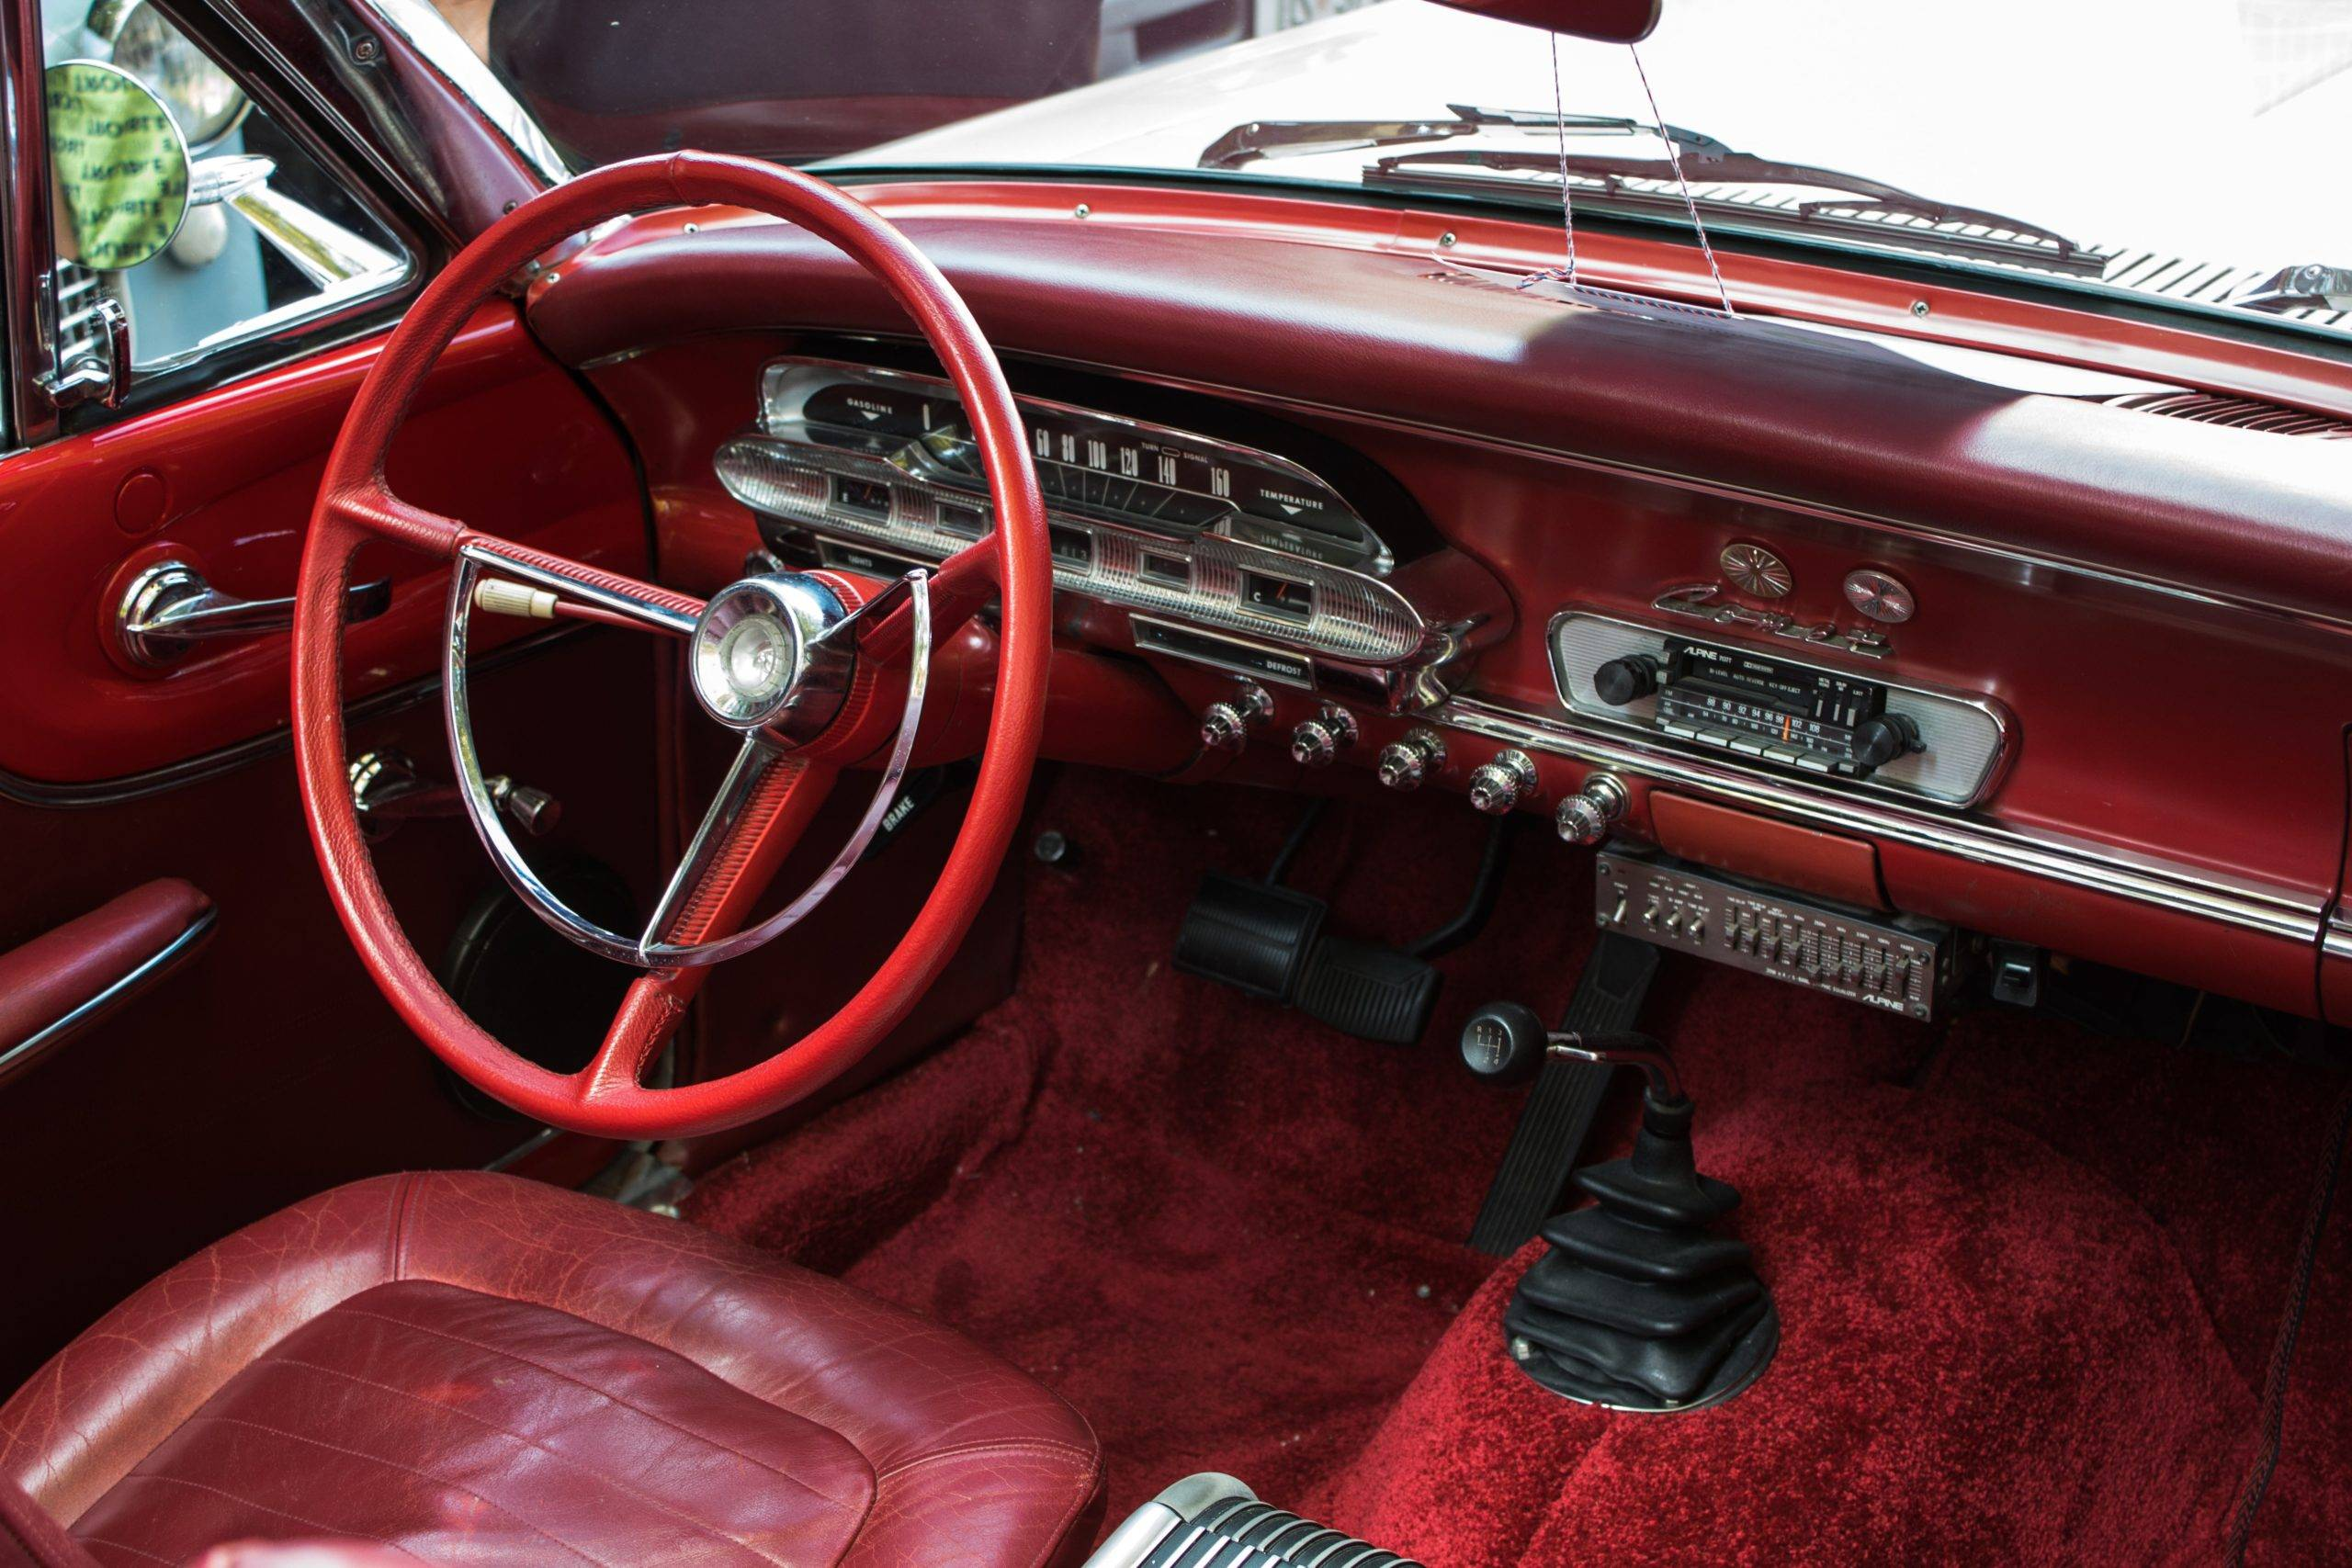 Red car interior with large red steering wheel